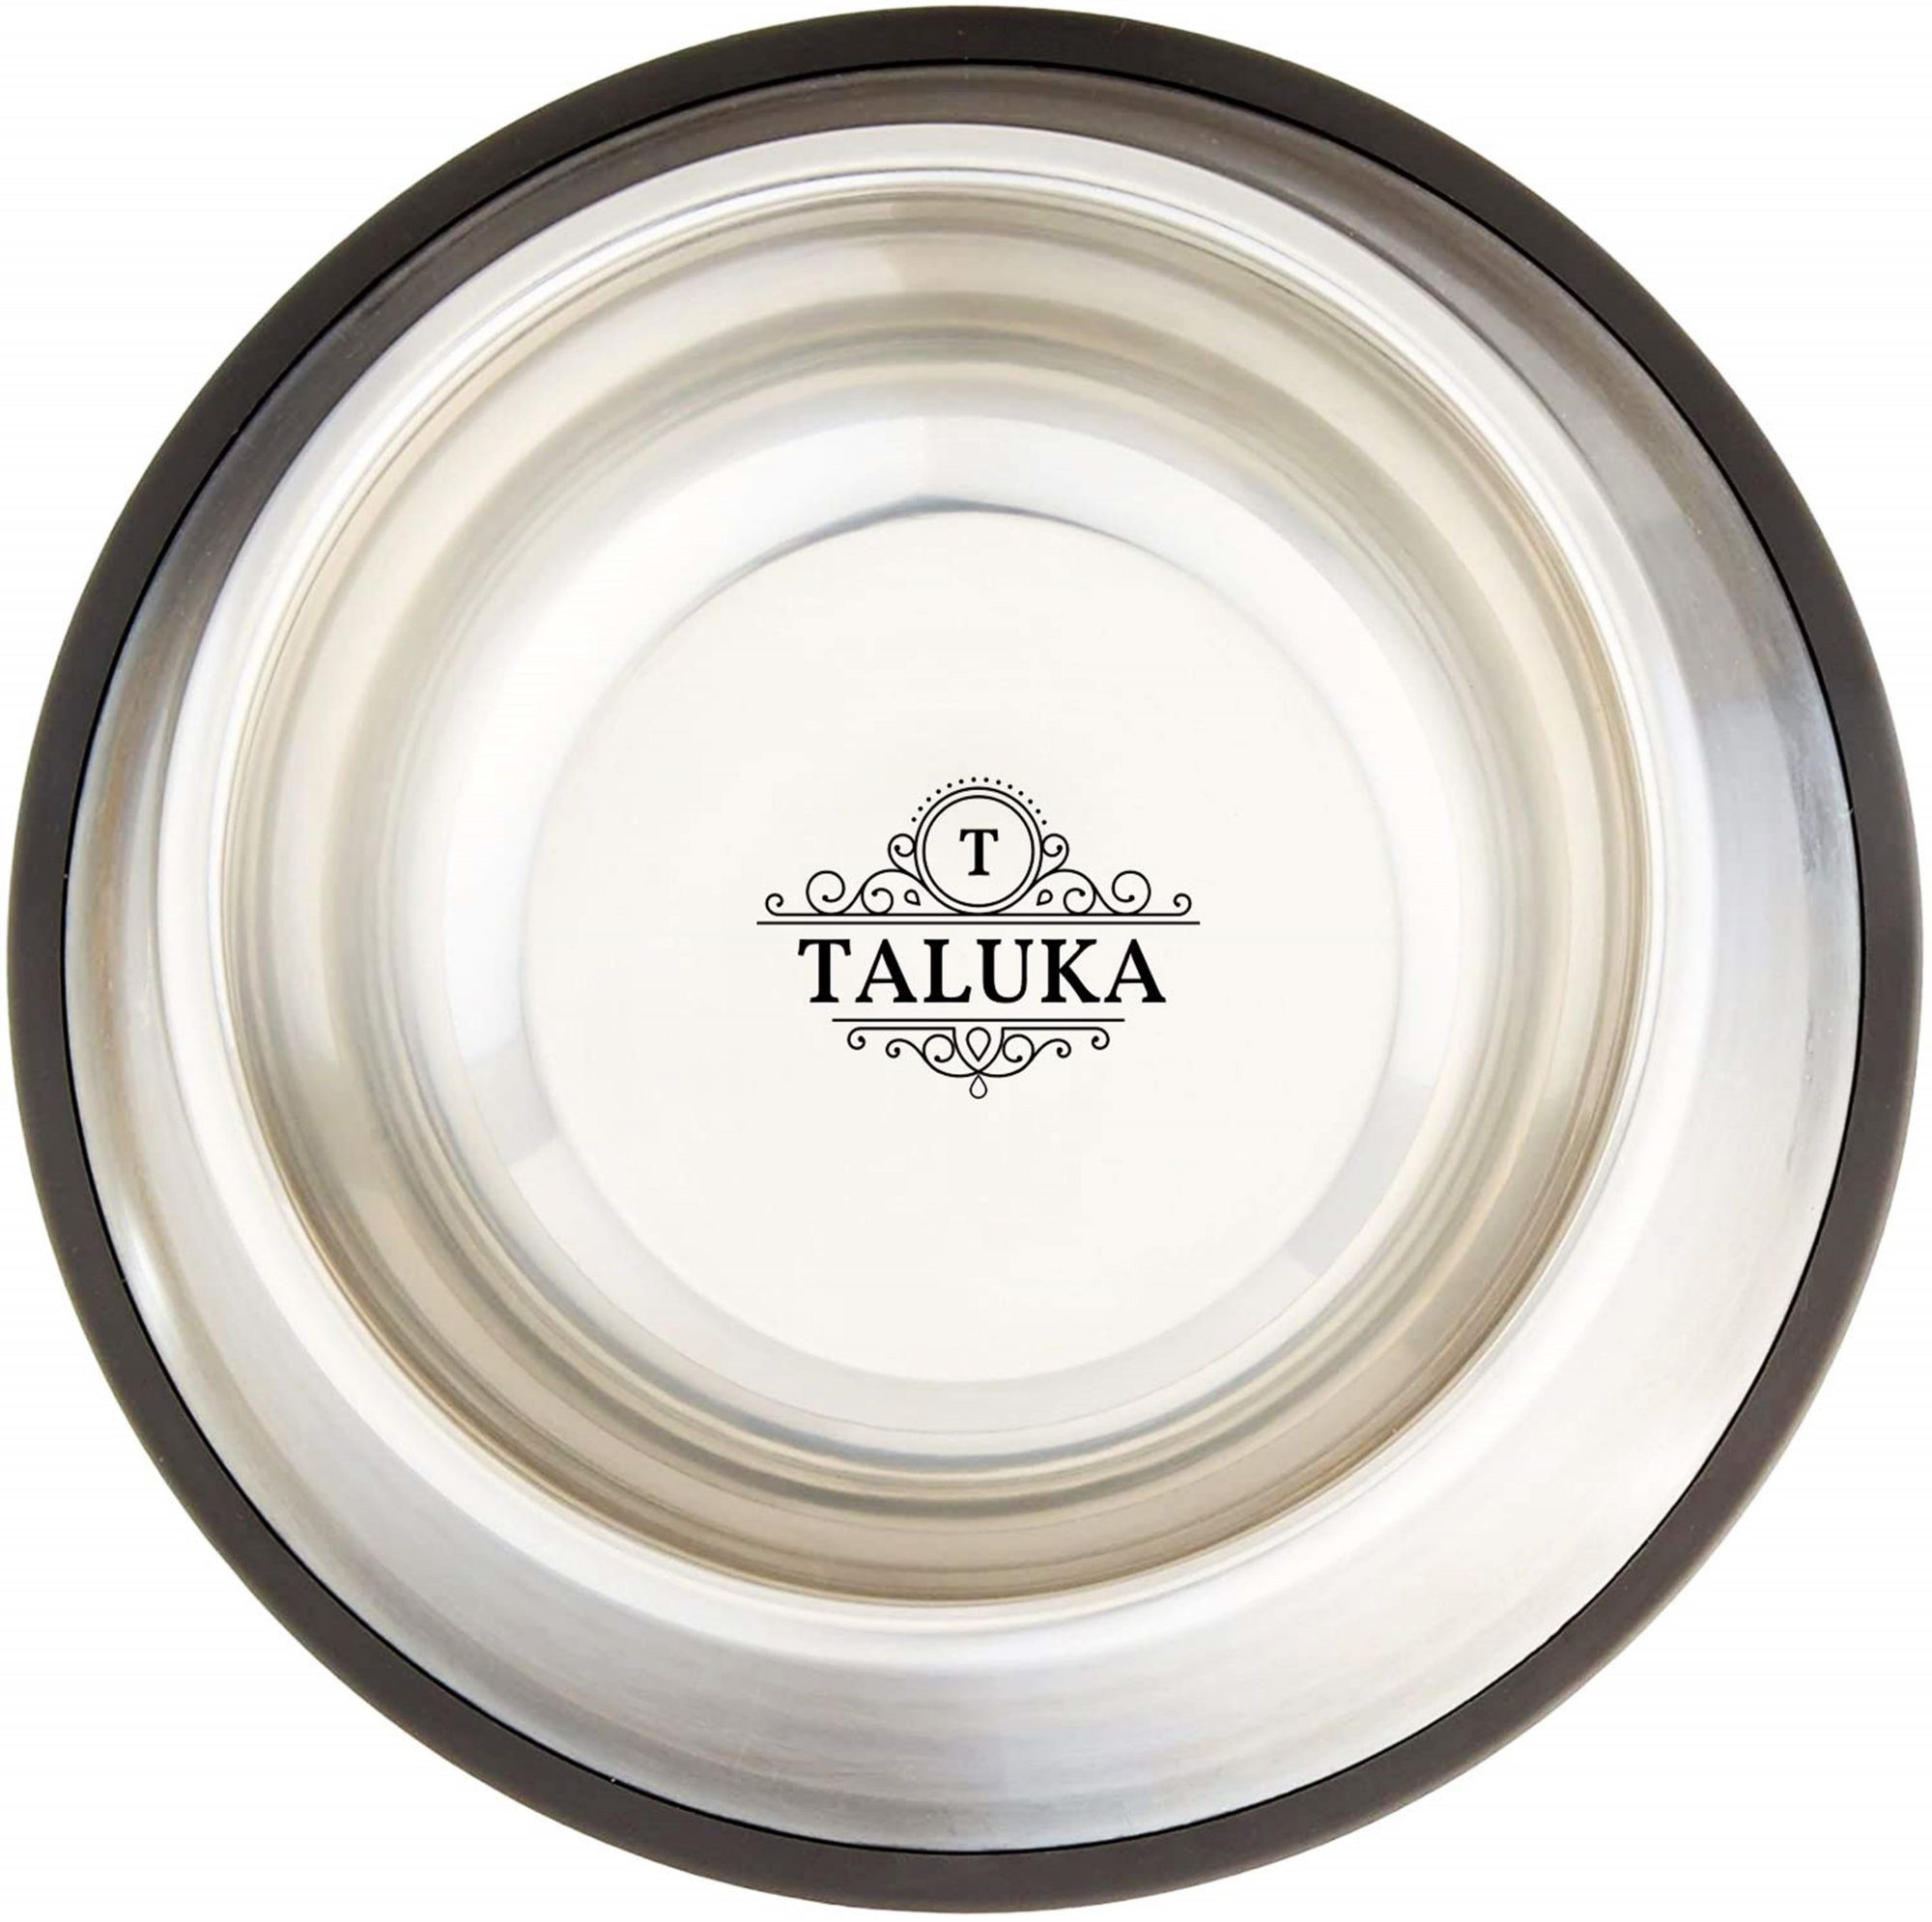 Taluka Pet Feeding Bowls for Dogs- Set of 3, 500 ML + 700 ML + 1000 ML, with Anti Skid Ring